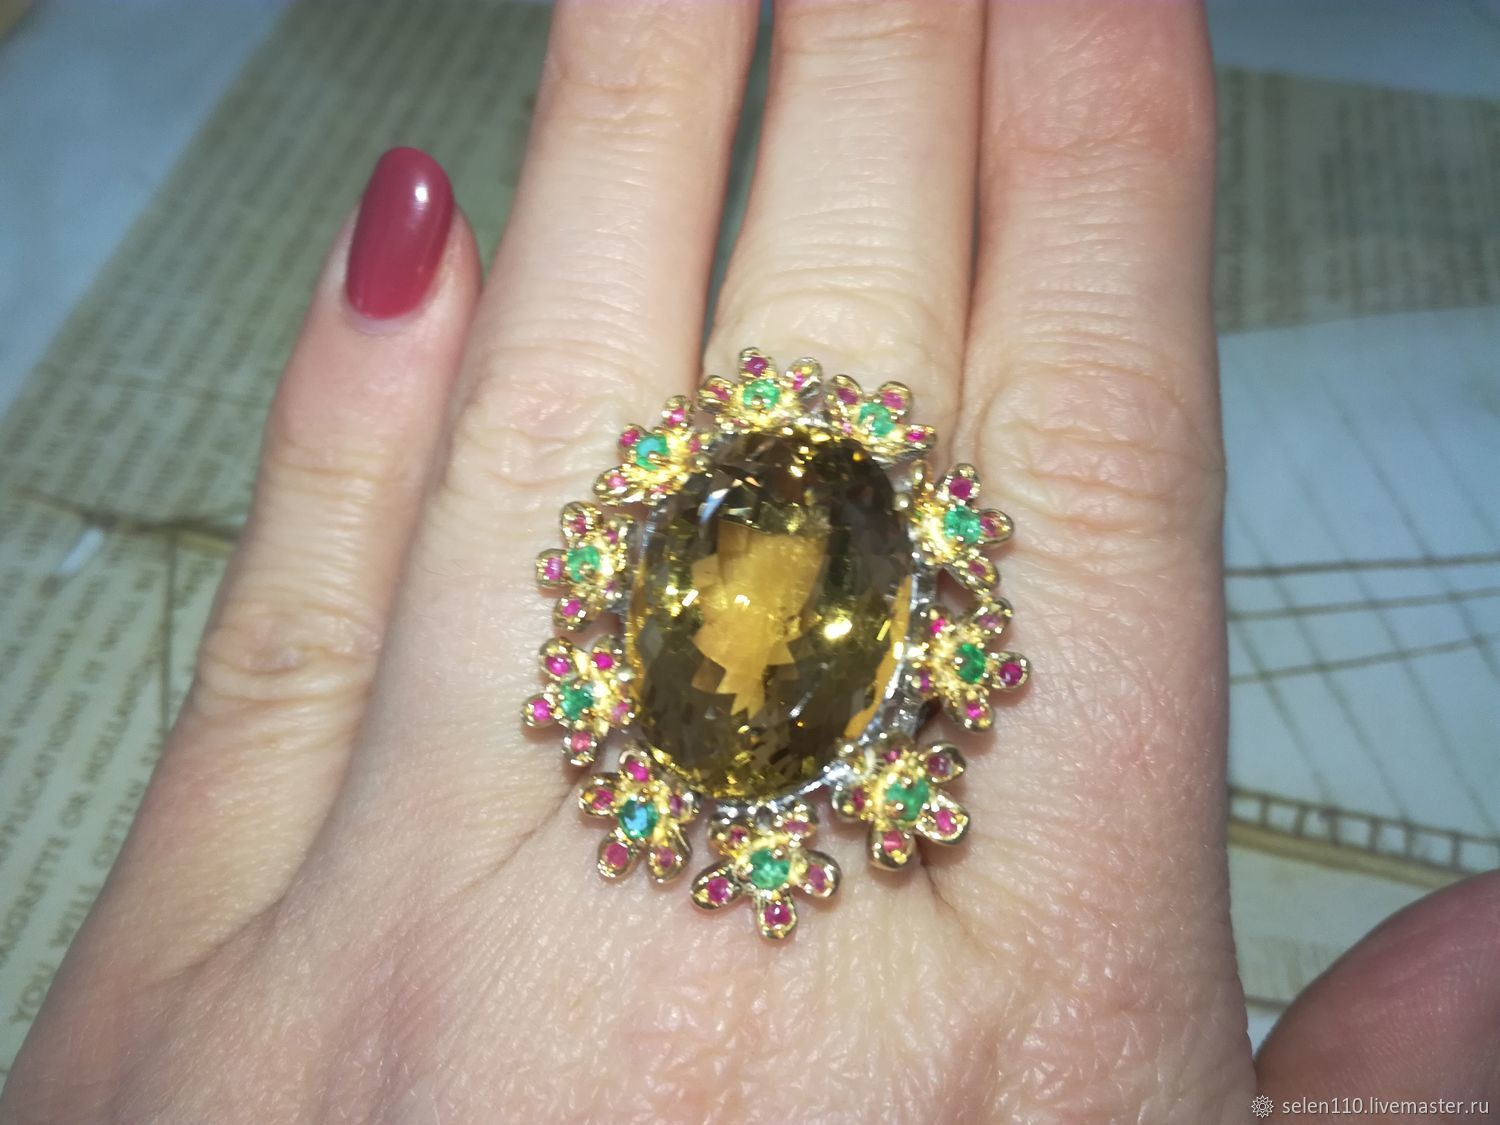 Ring 'flower Bed' with a large citrine, emeralds and rubies, Rings, Voronezh,  Фото №1